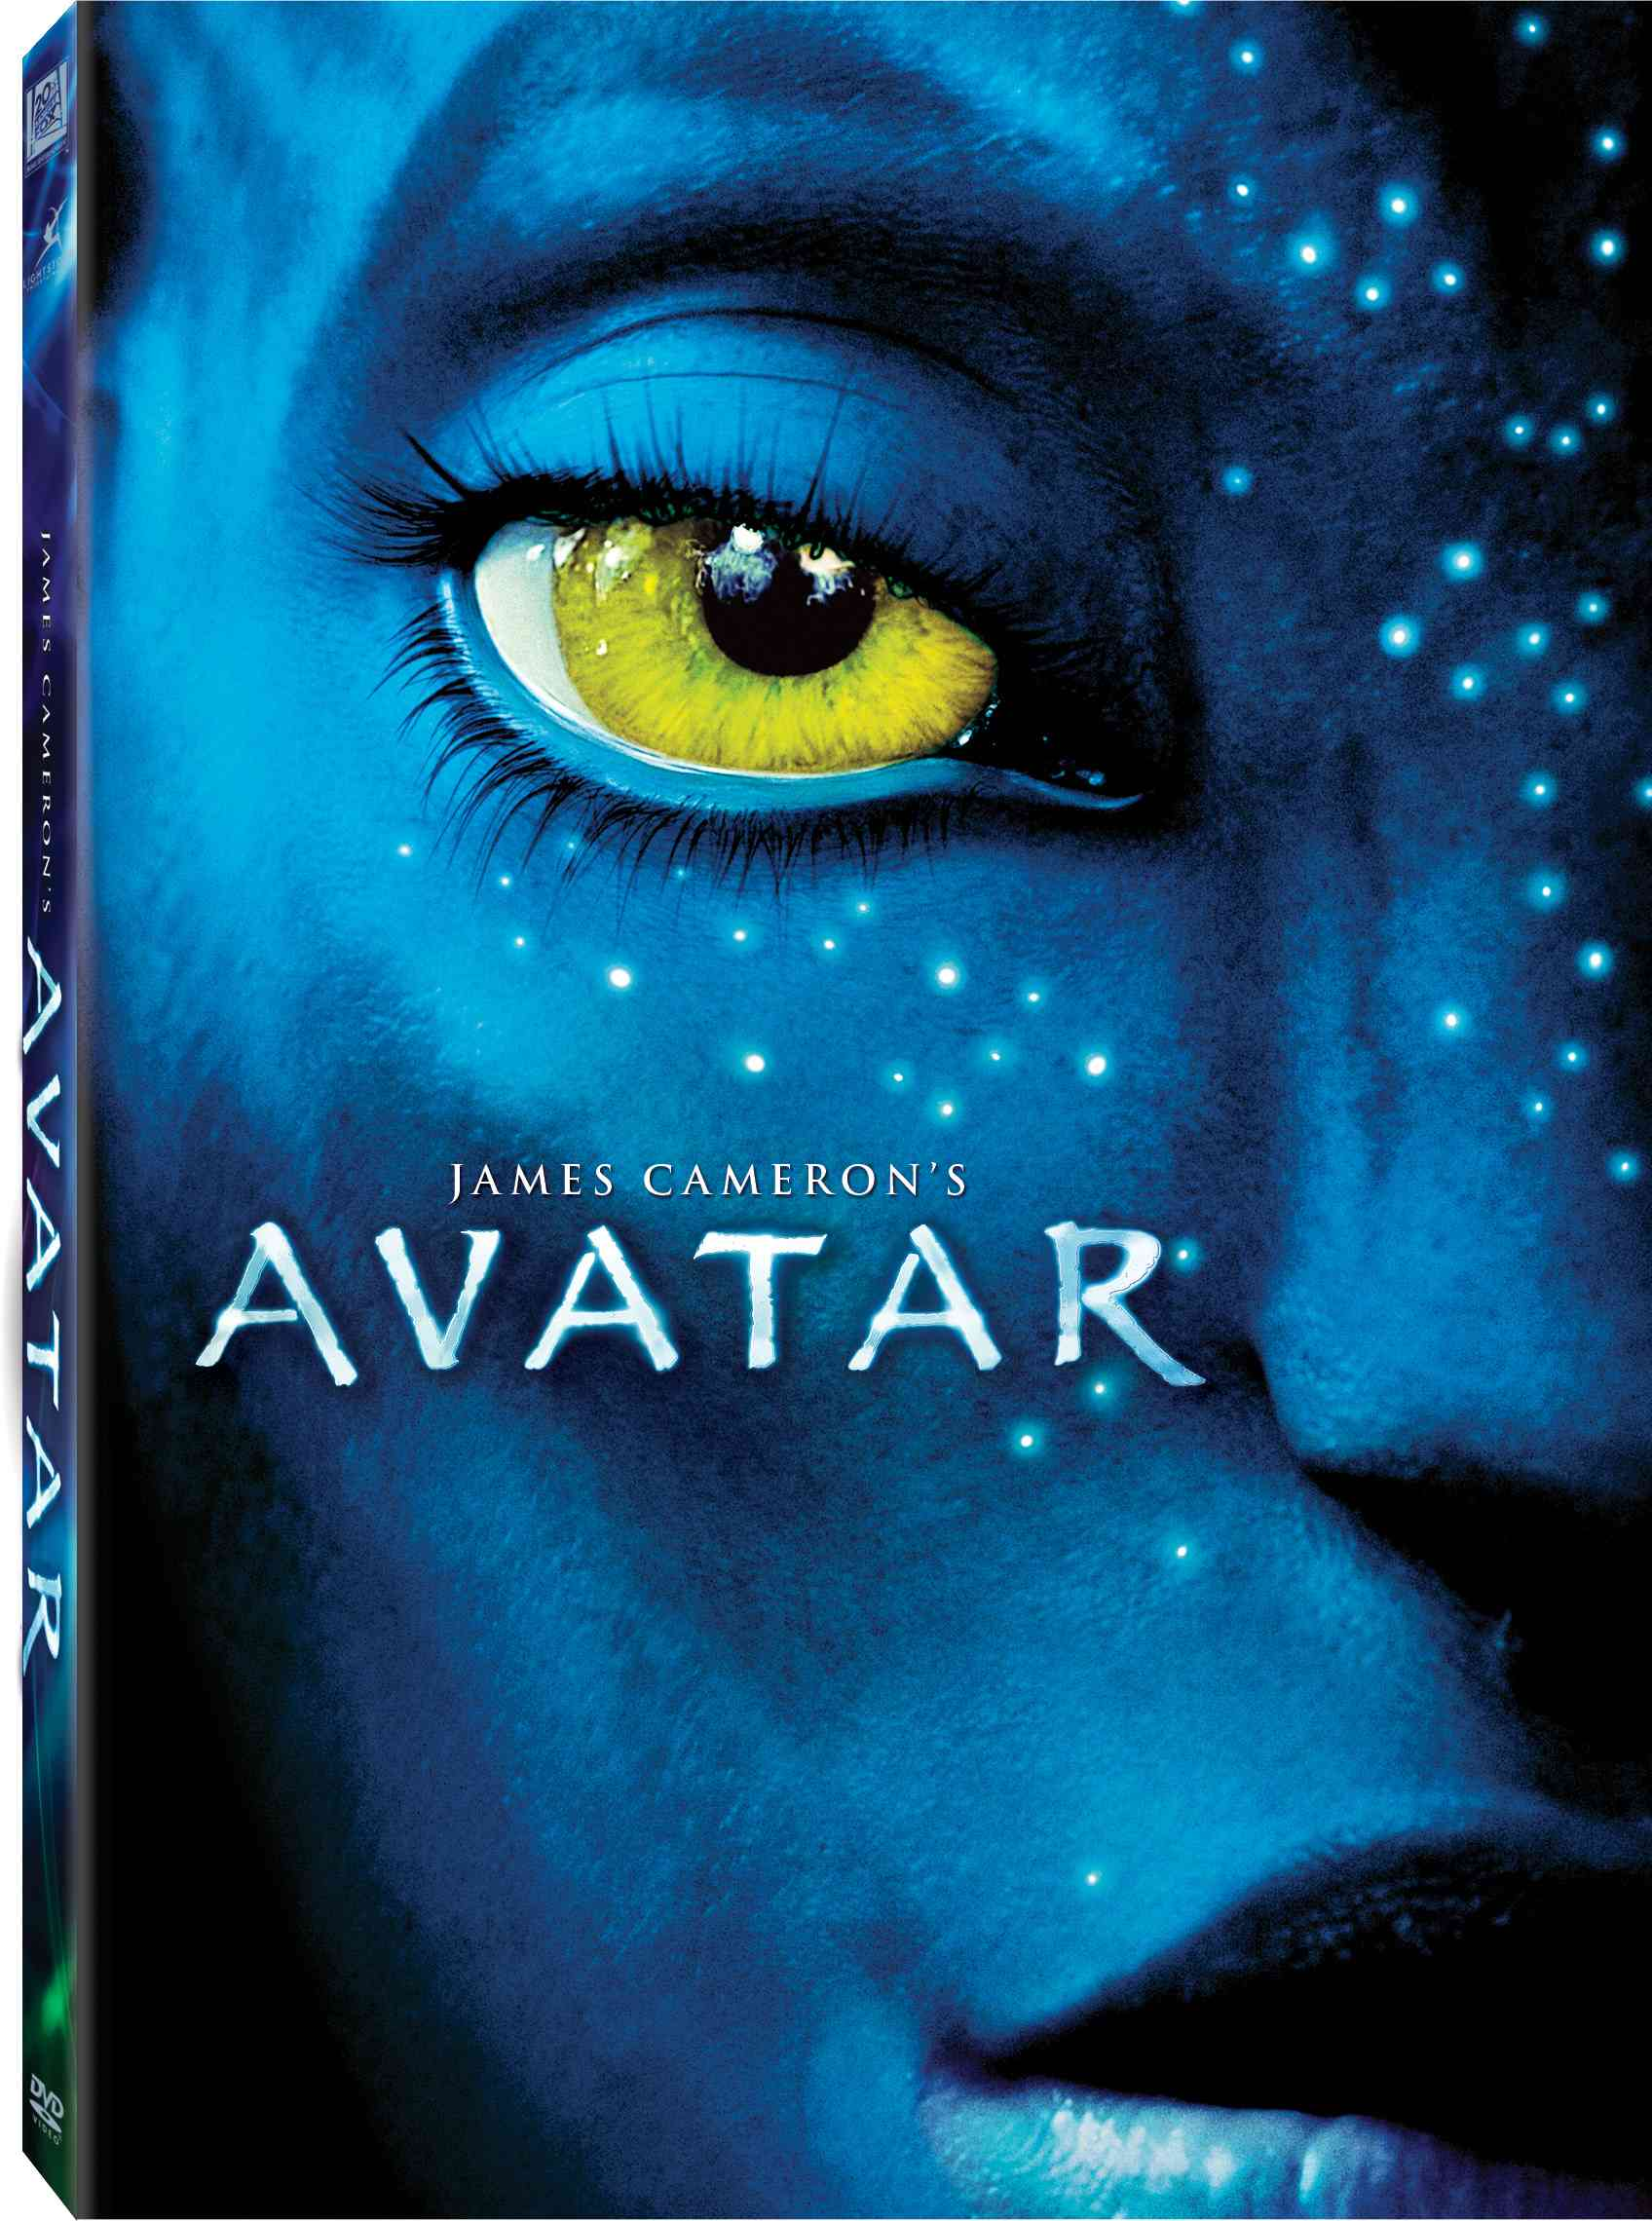 avatar a mom and sons dvd review mar vista mom well here goes we love this movie even on dvd even on our puny tv set even though it s not in 3d we all love this movie